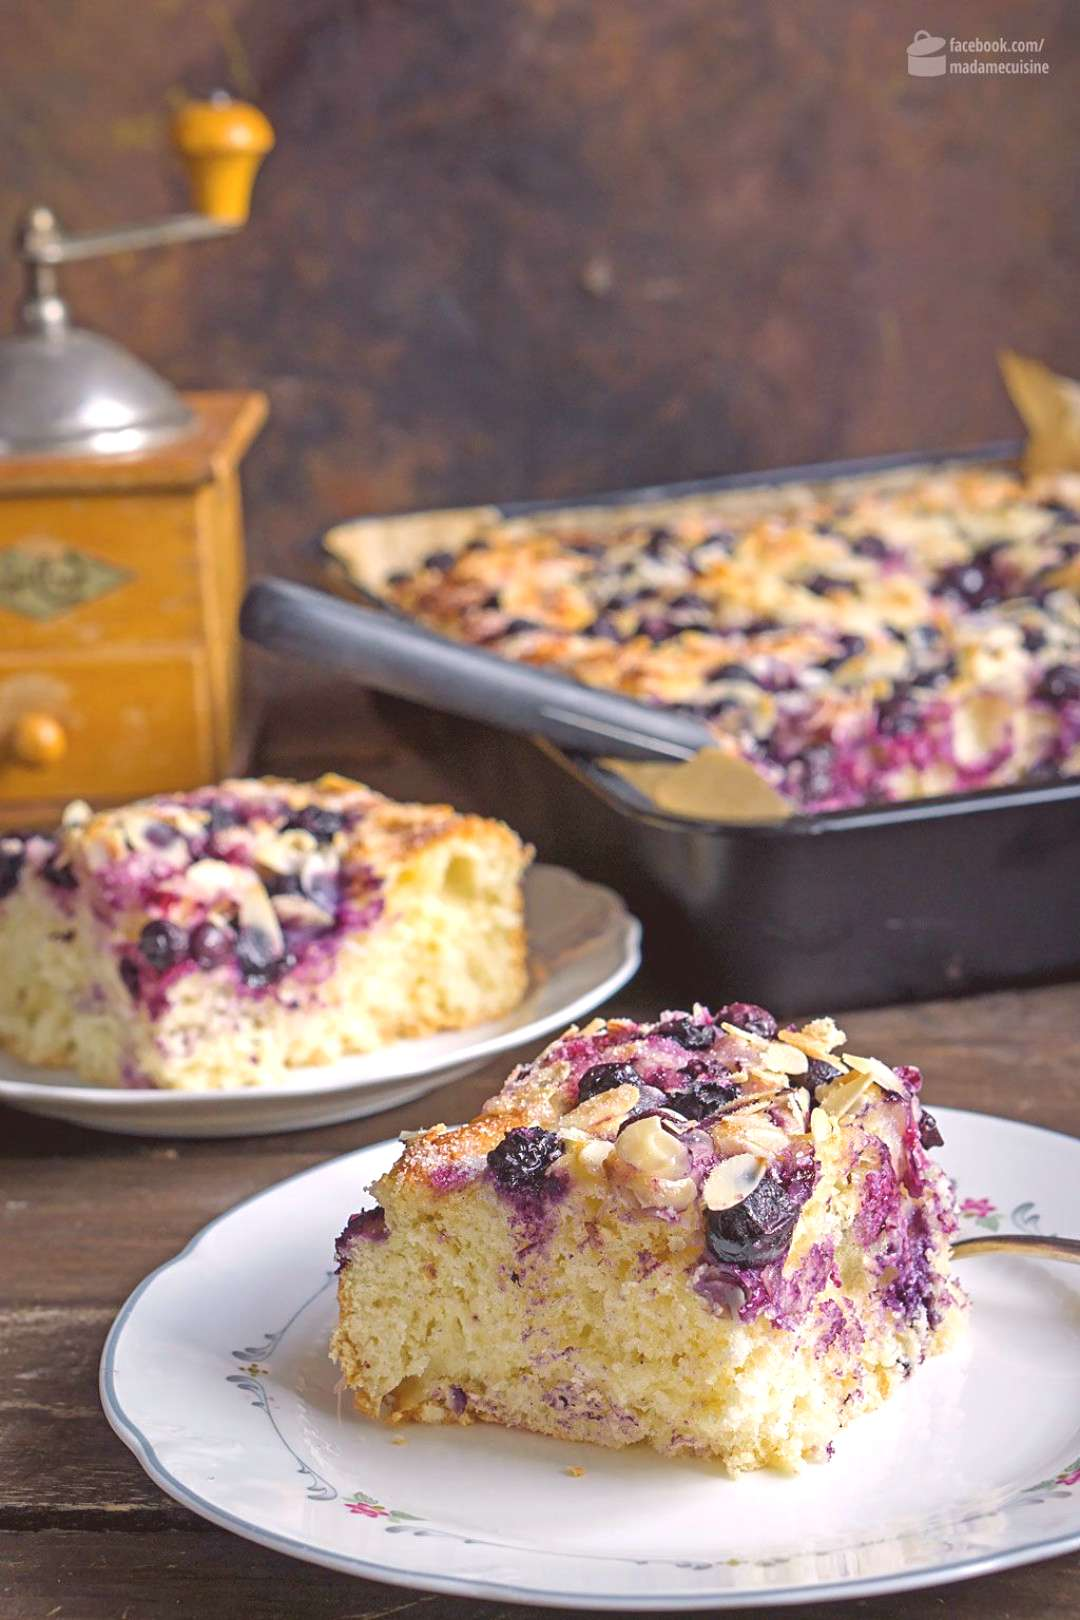 Butter cake with blueberries and flaked almonds - Madame Cuisine -  Butter cake with blueberries an